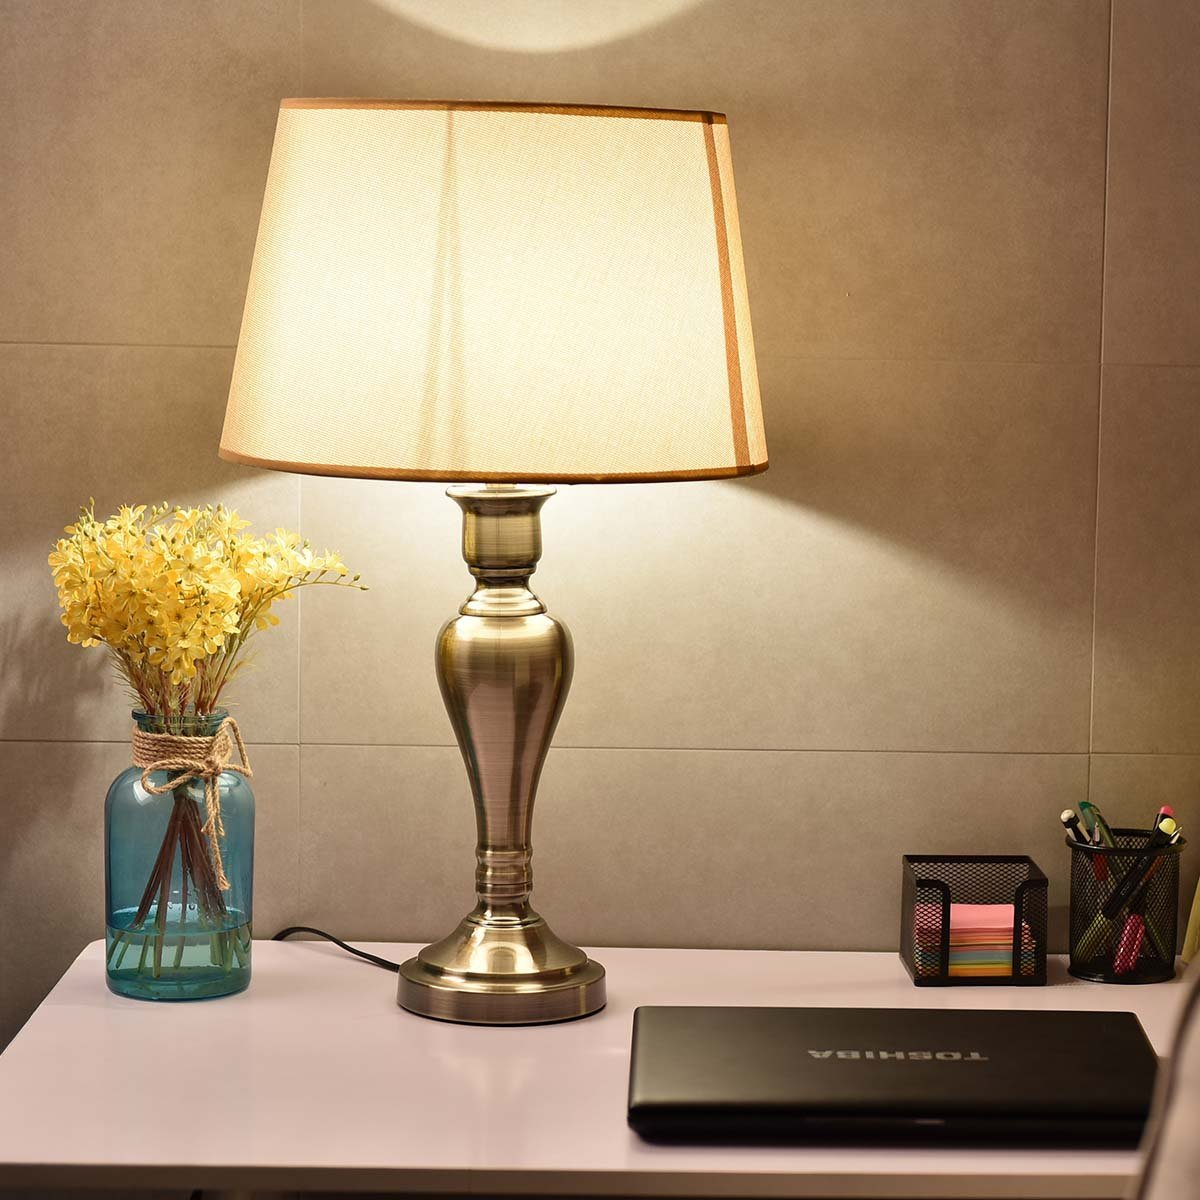 Safstar Bedside Lamp Nightstand Table Lamp with Flaxen Fabric Shade and Antique Brass Base for Bedroom, Dresser, Living Room, Kids Room, College Dorm, Coffee Table, Bookcase